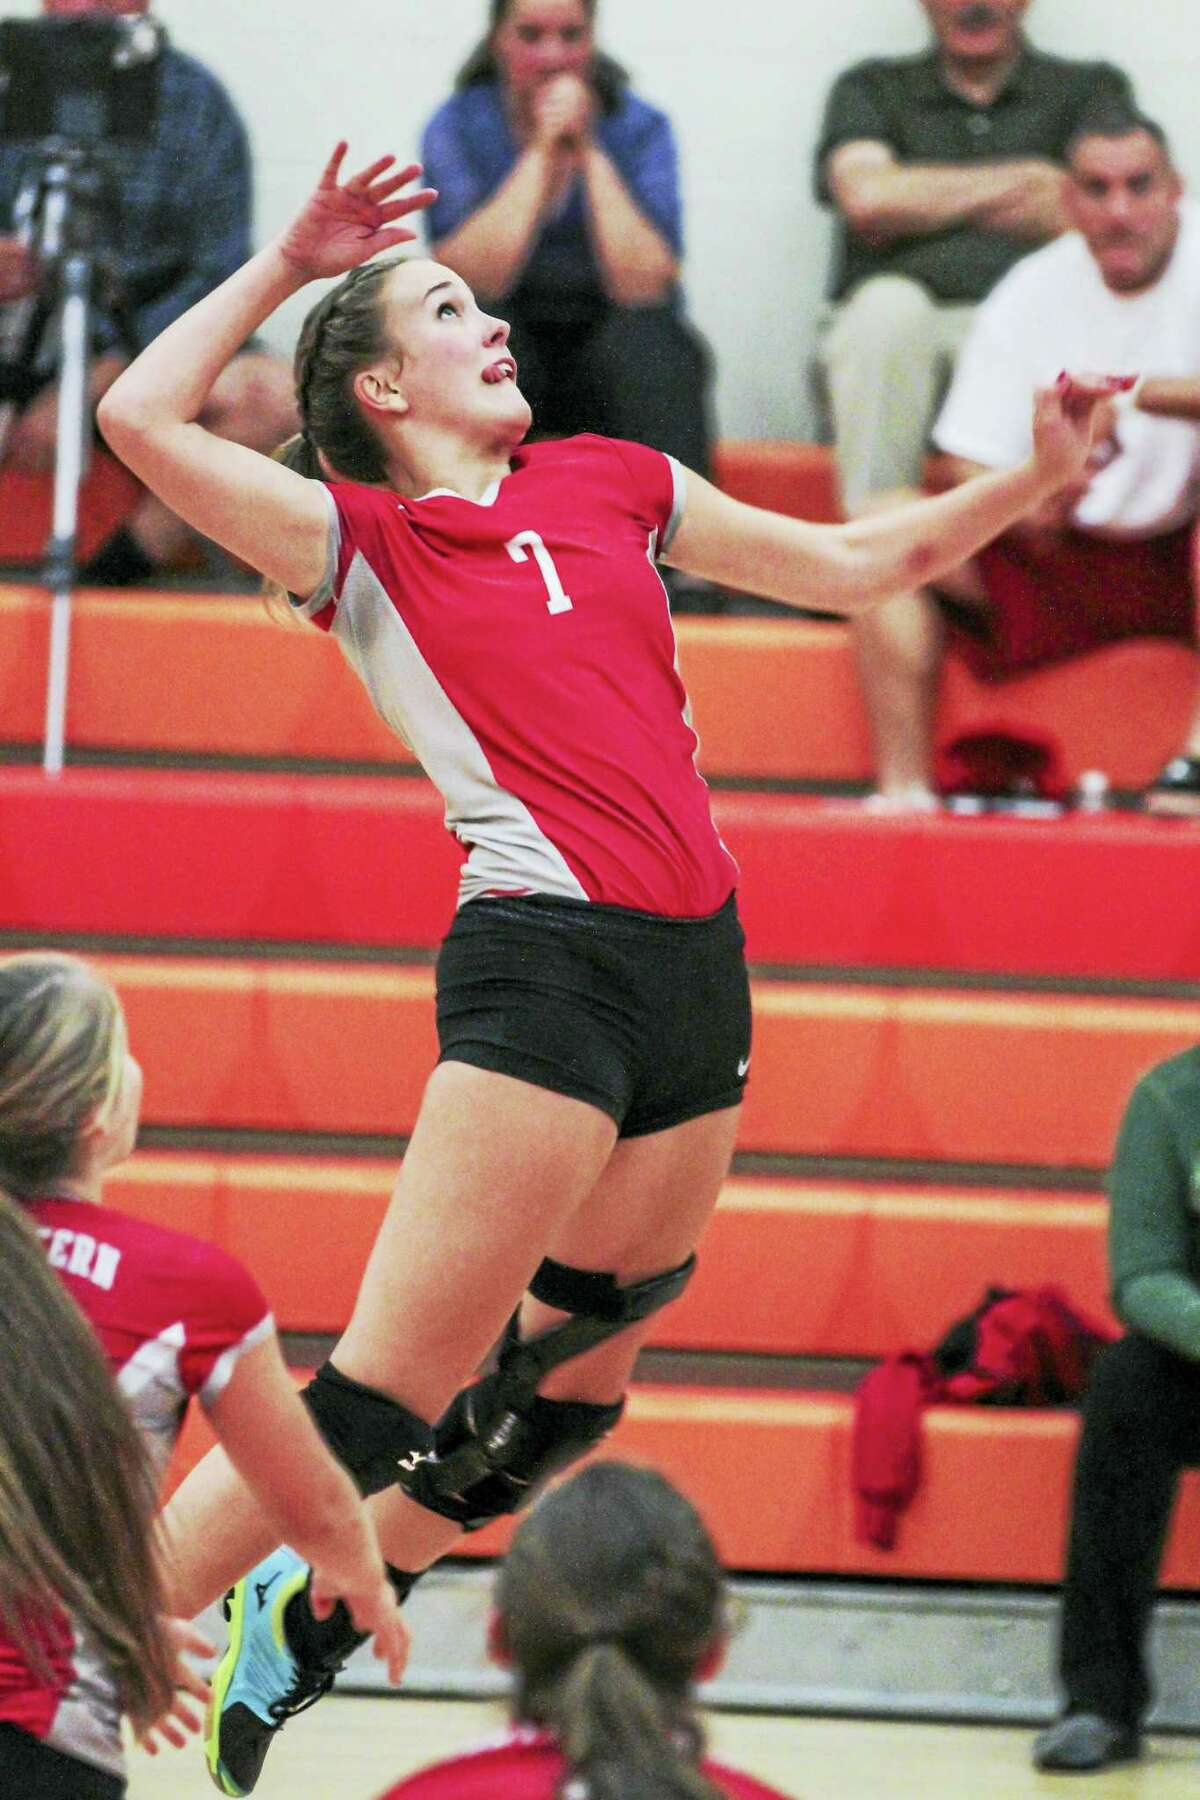 Photo by Marianne KillackeyDespite great digs by the Kangaroos, Northwestern's Molly Clarke led all hitters with 16 kills in the Highlander win at Terryville High School.